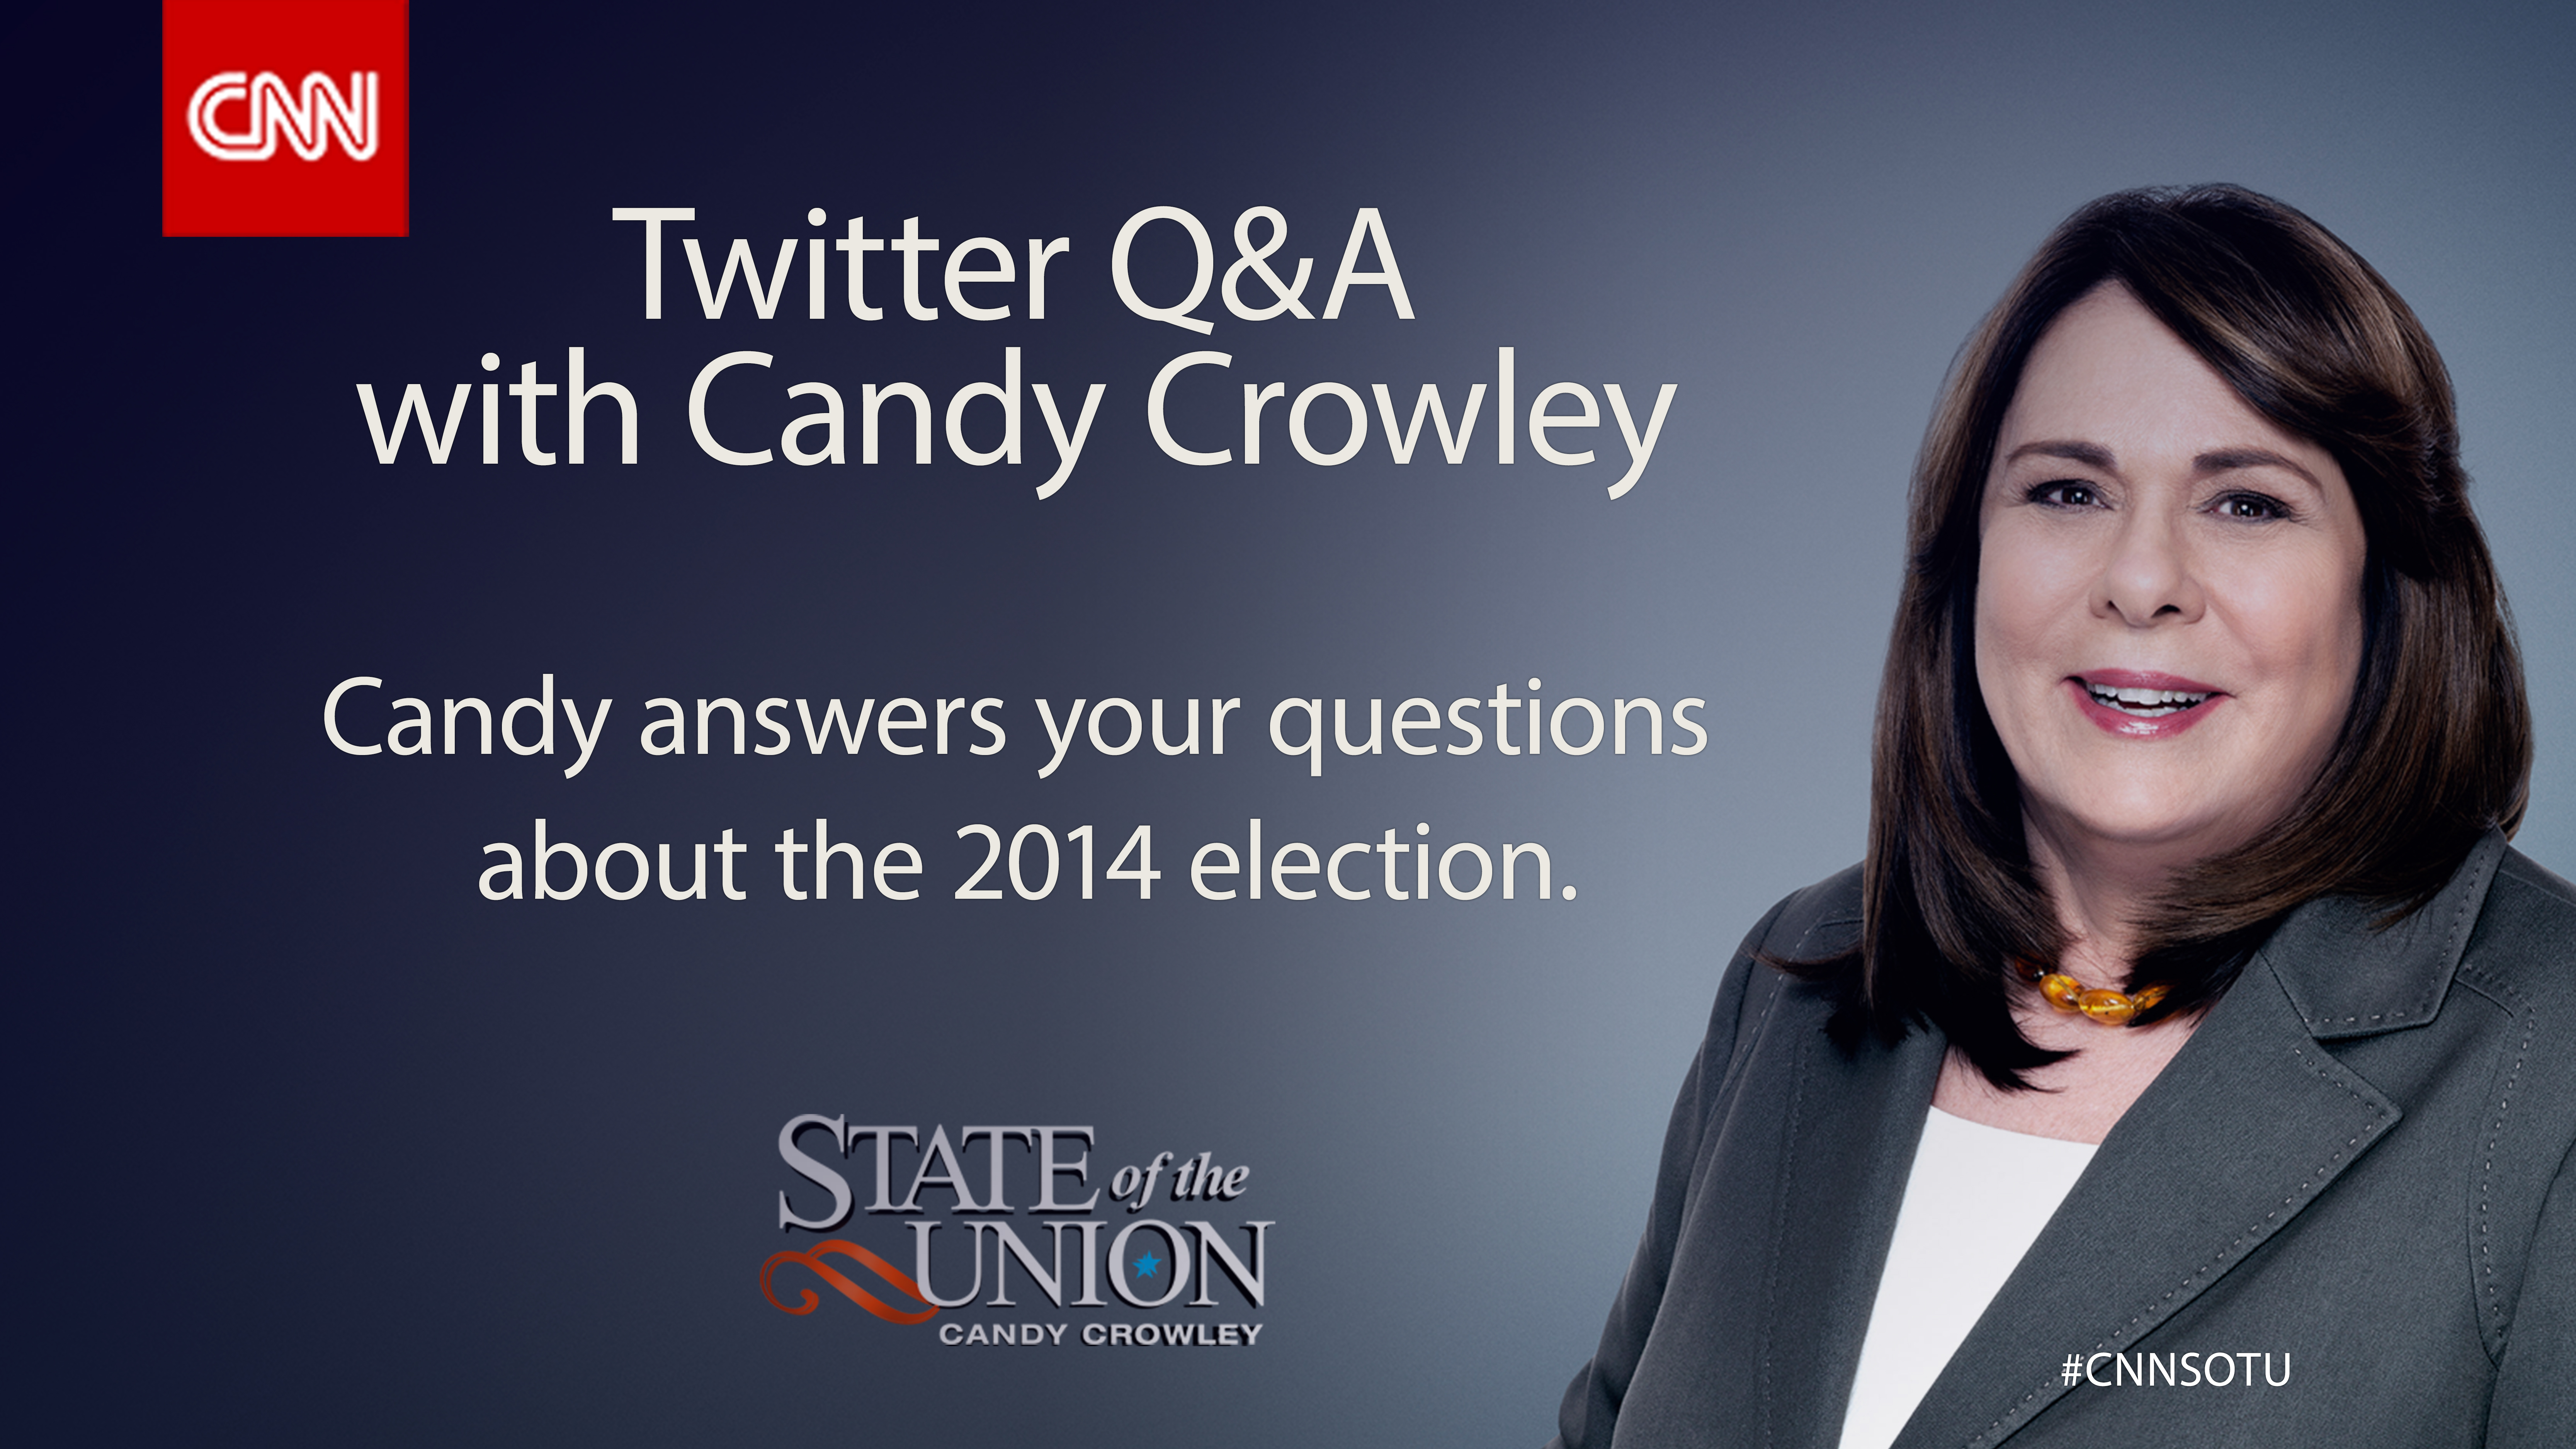 Candy's Twitter Q&A: Election 2014